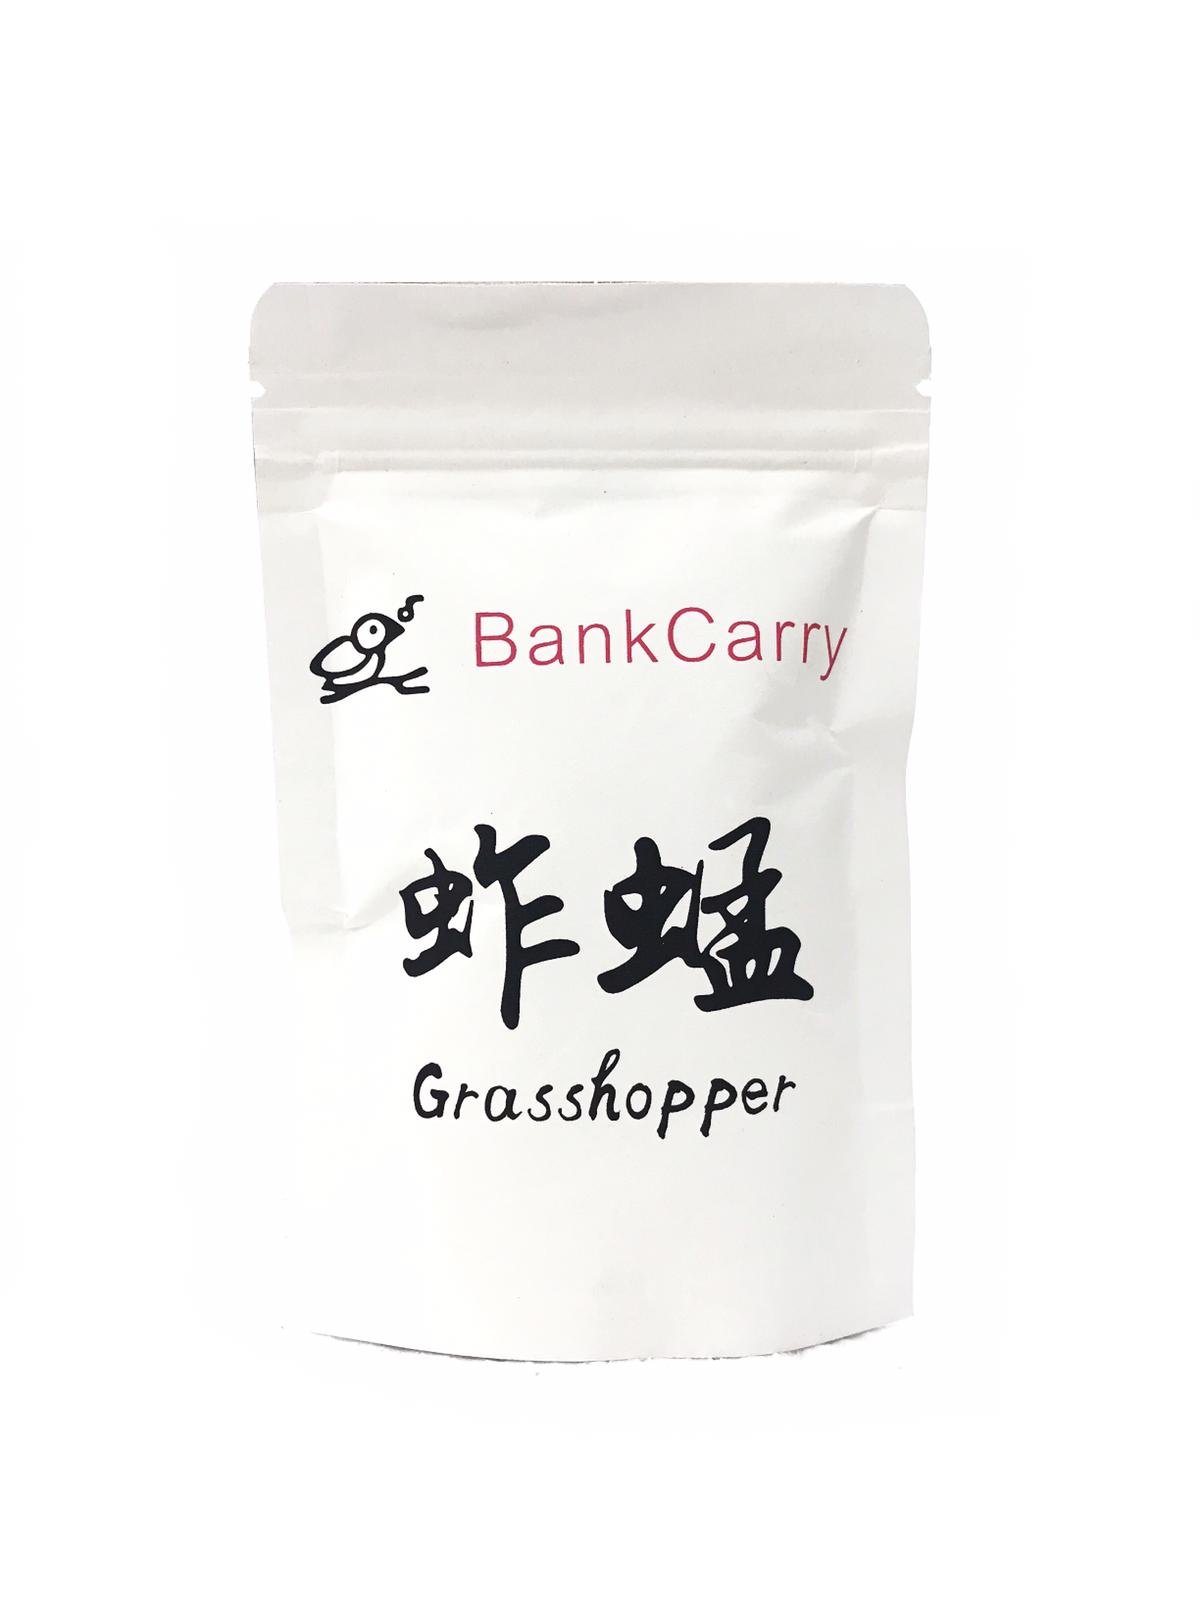 Bankcarry Grasshopper